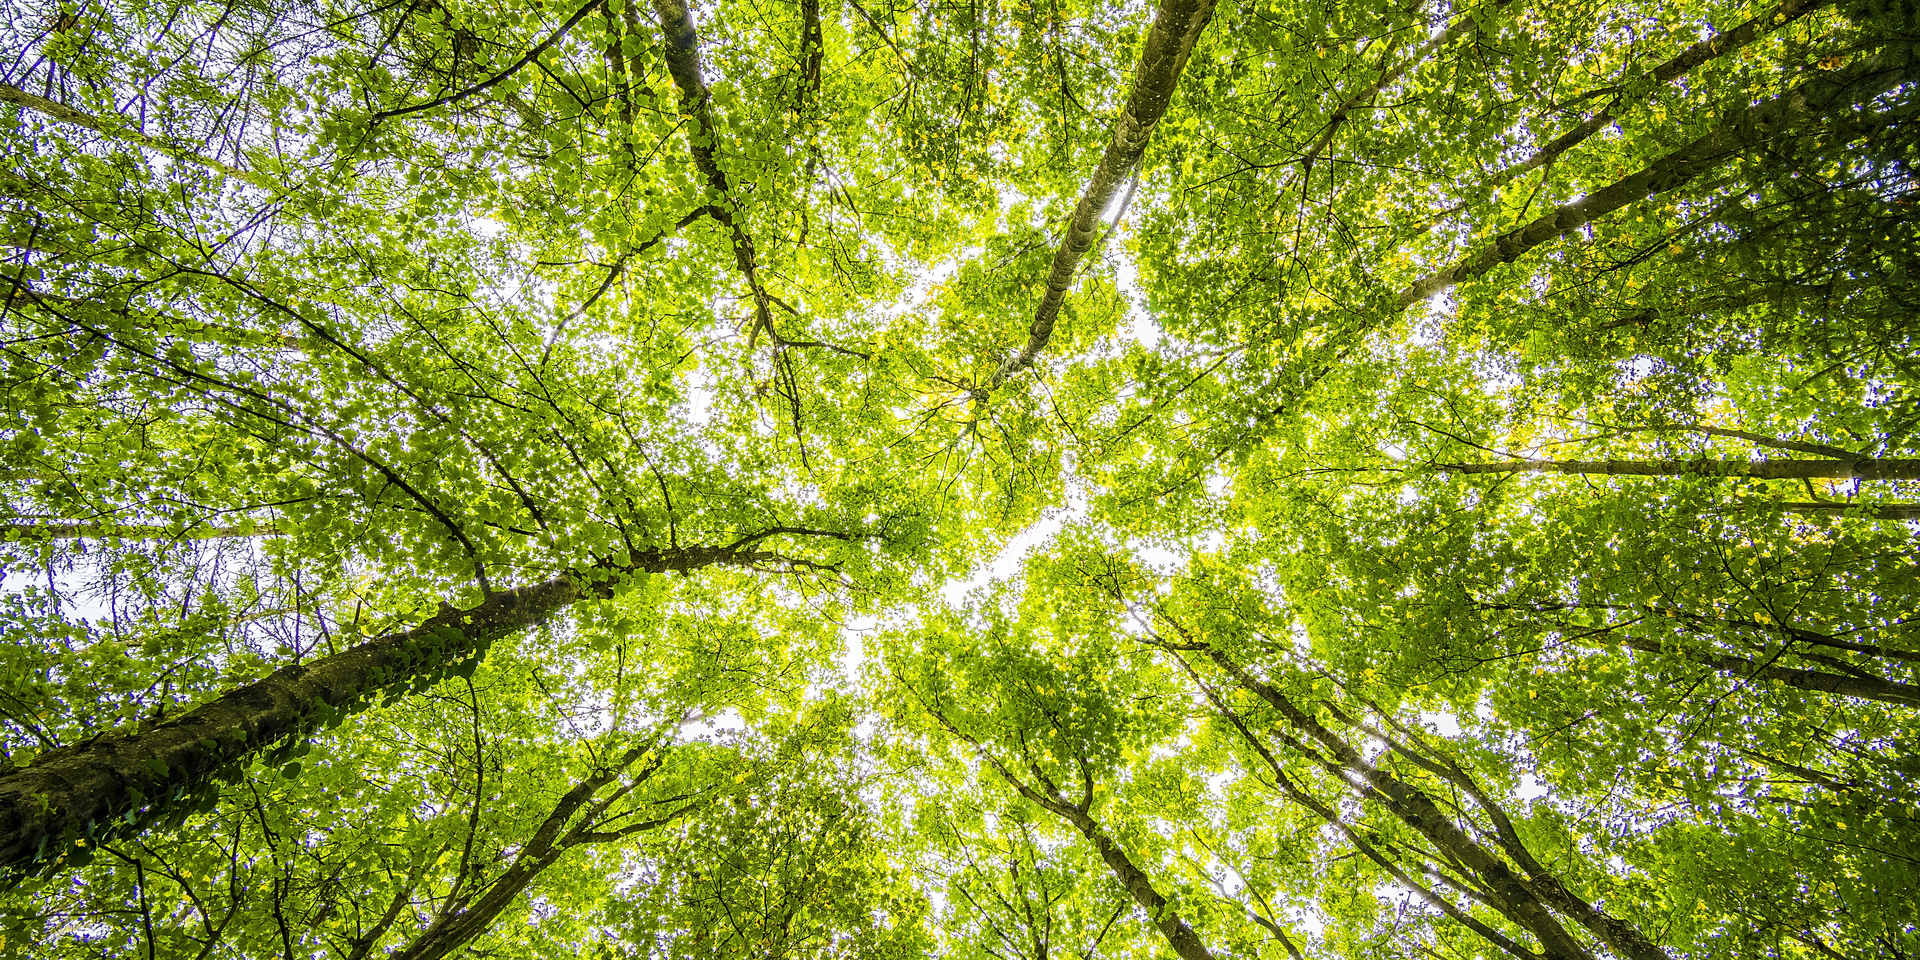 worms-eyeview-of-green-trees-957024.jpg